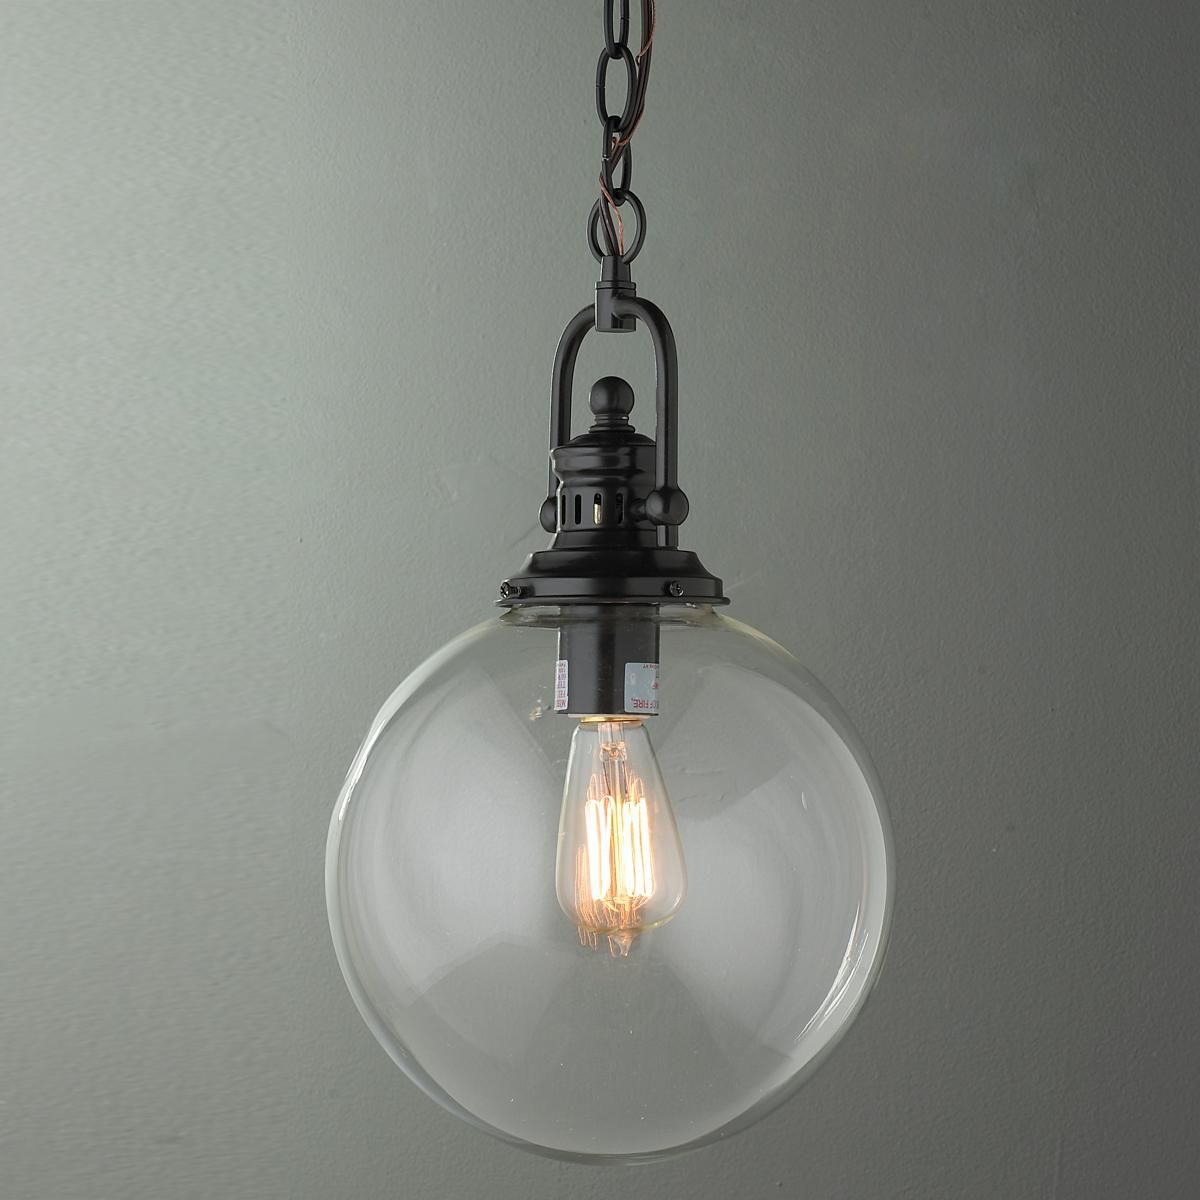 Glass Pendant Lights For Kitchen Island: Clear Glass Globe Industrial Pendant